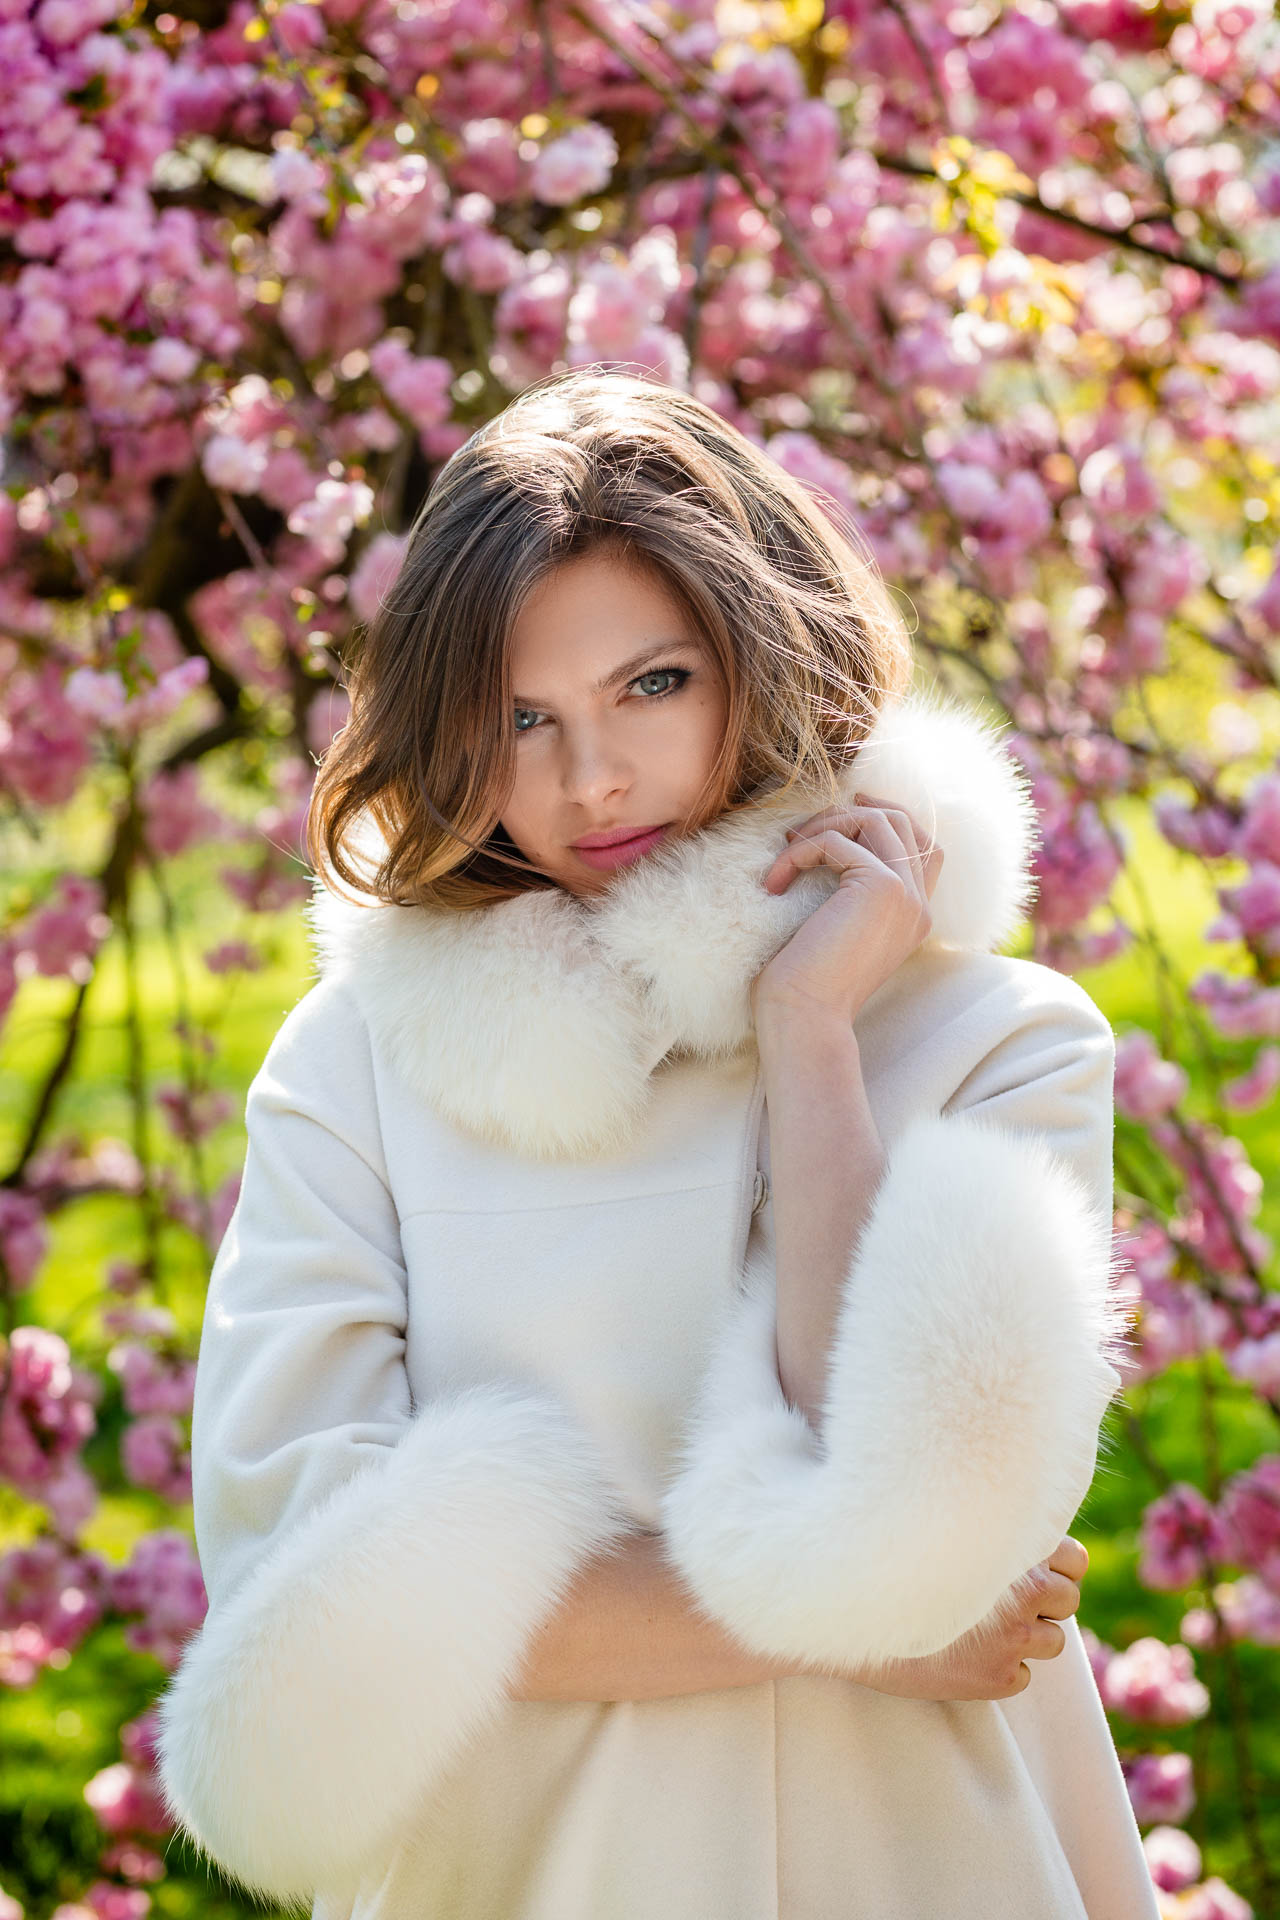 Portrait of a young woman peeping out of white fur collared coat with blossoms in background